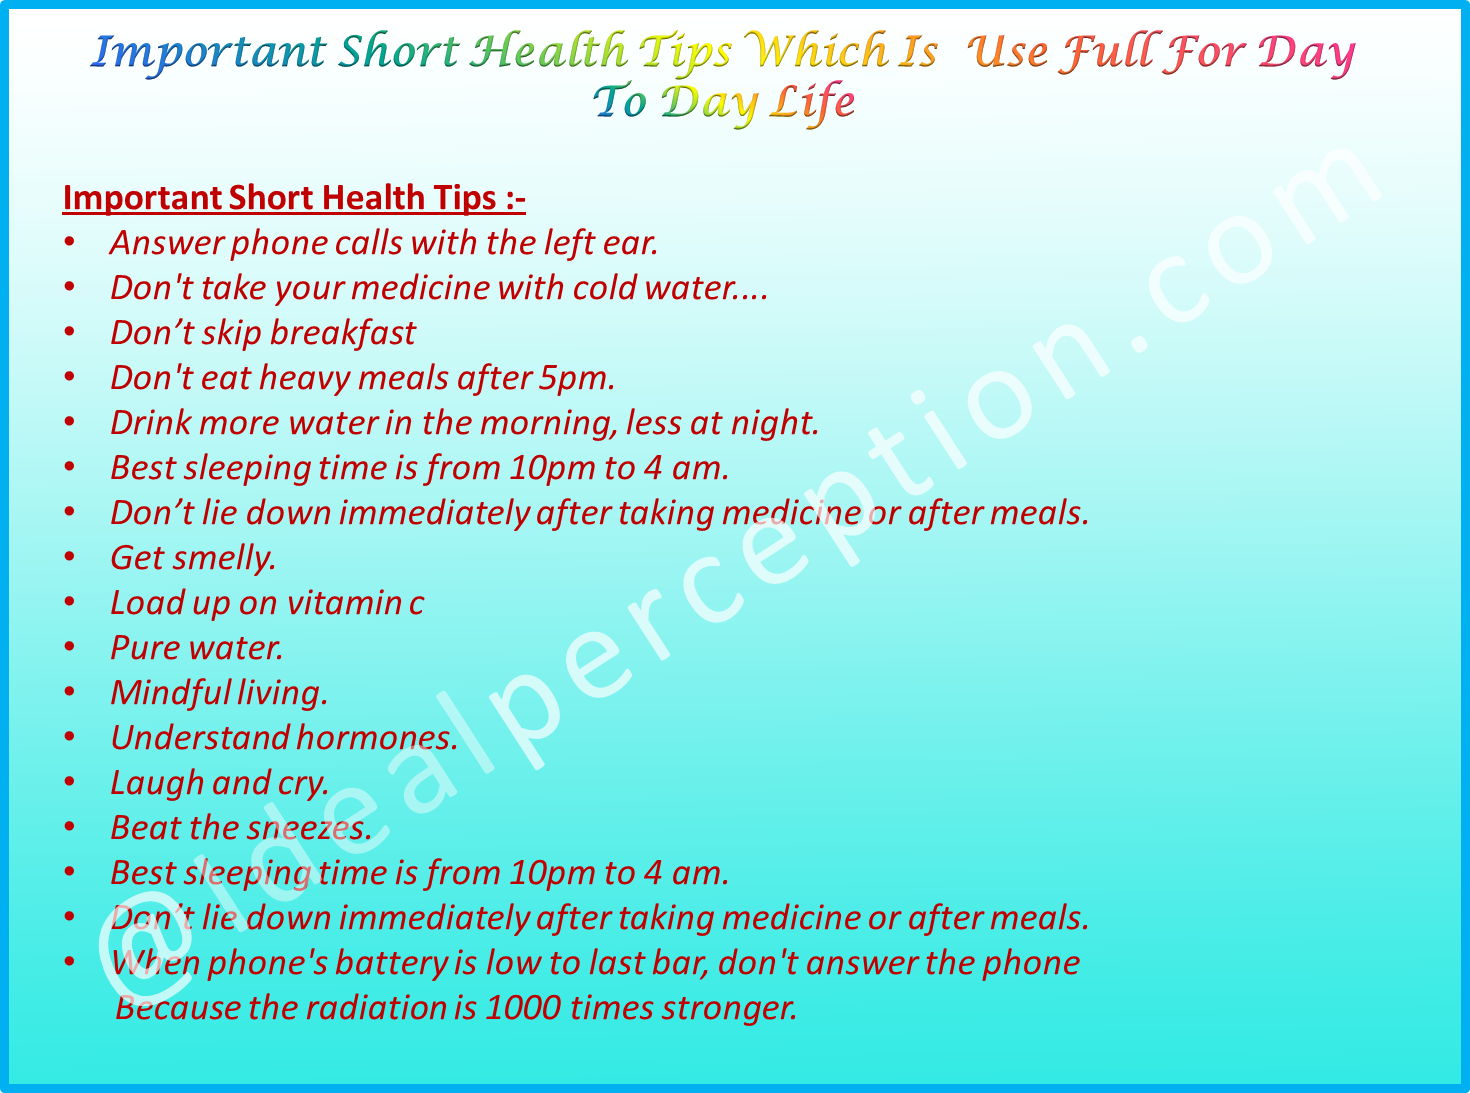 theses all important short health tips for day to day life  theses all important short health tips for day to day life activity for common man